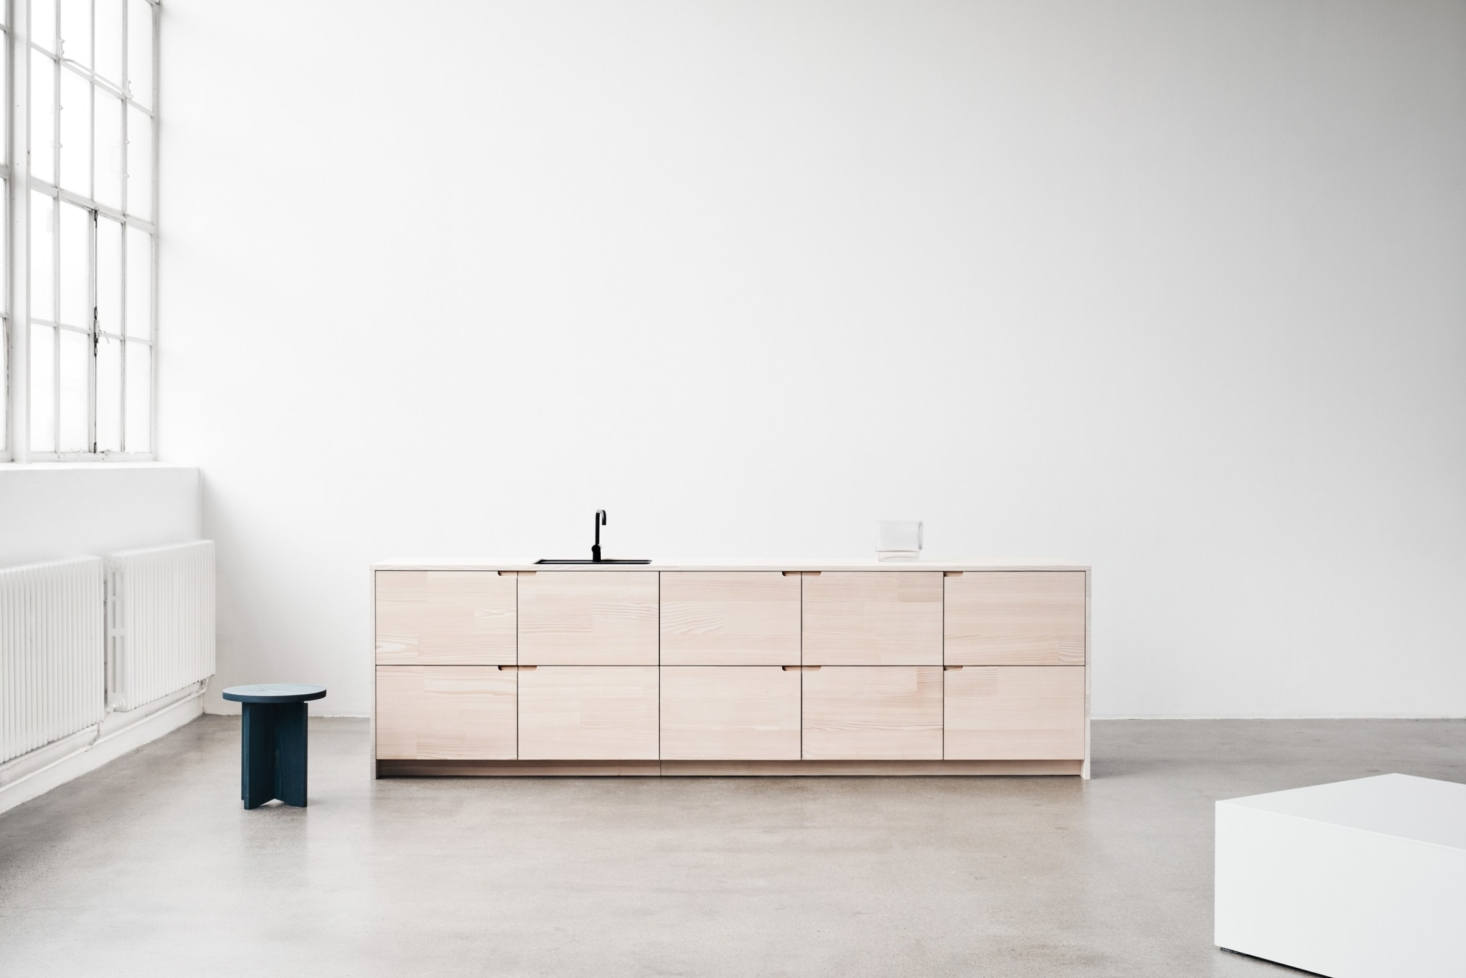 From Reform: A New Line of Ikea Cabinet Fronts Made with Dinesen Wood